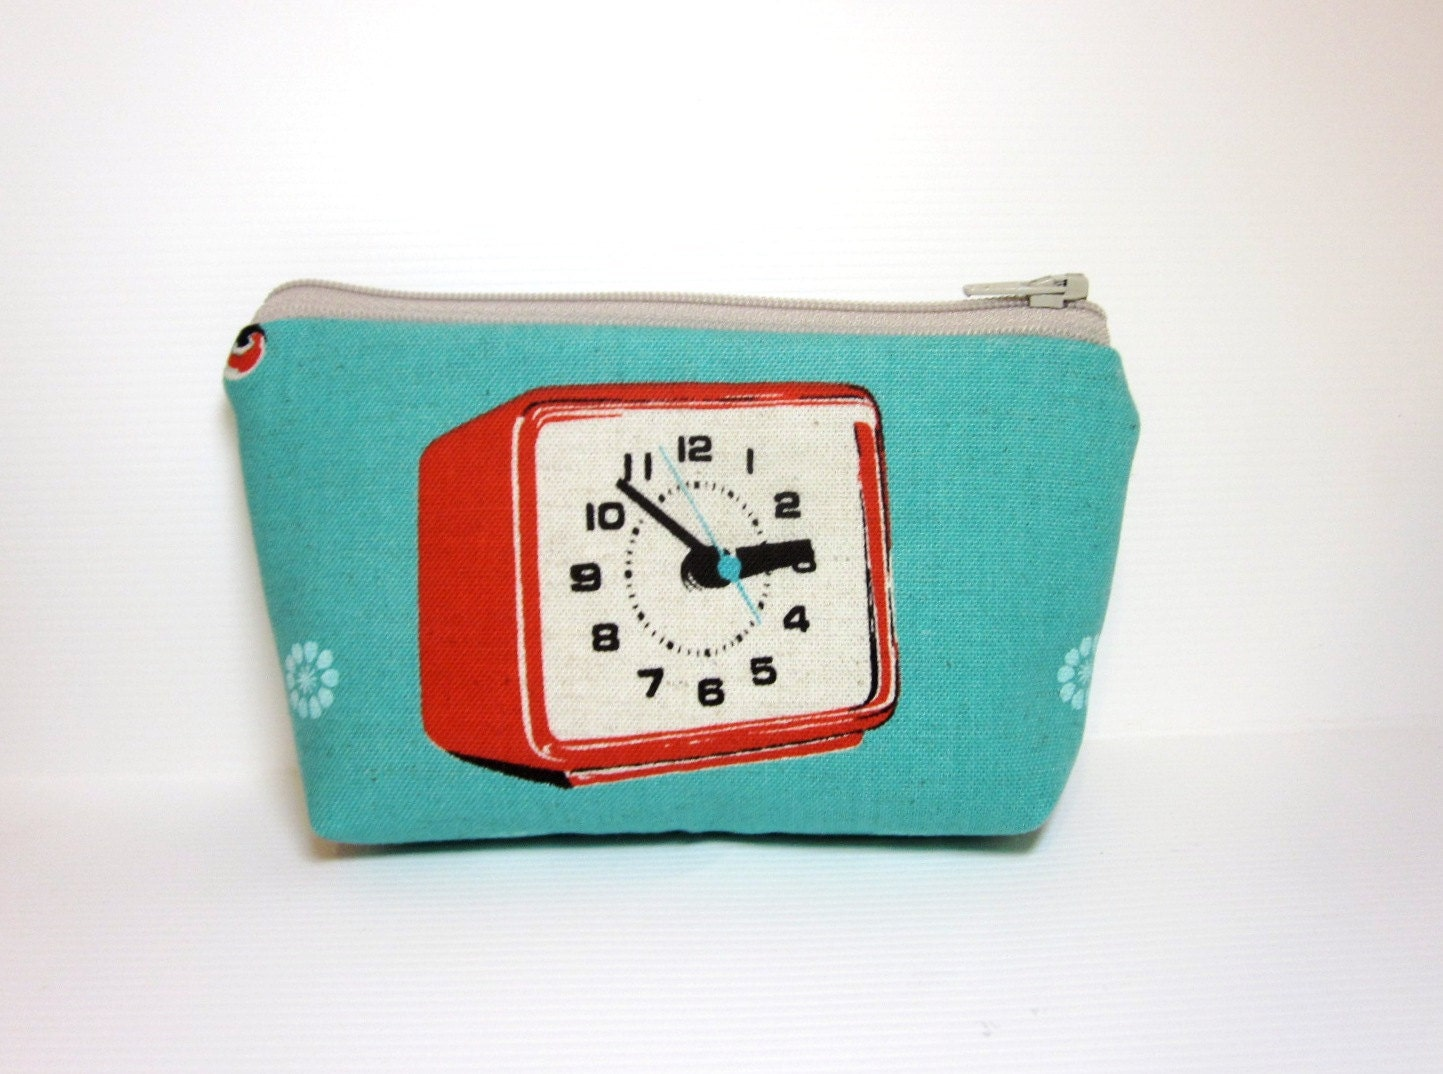 Small Zipper Pouch Small Wallet Small Cosmetic Pouch Retro Alarm Clock - handjstarcreations